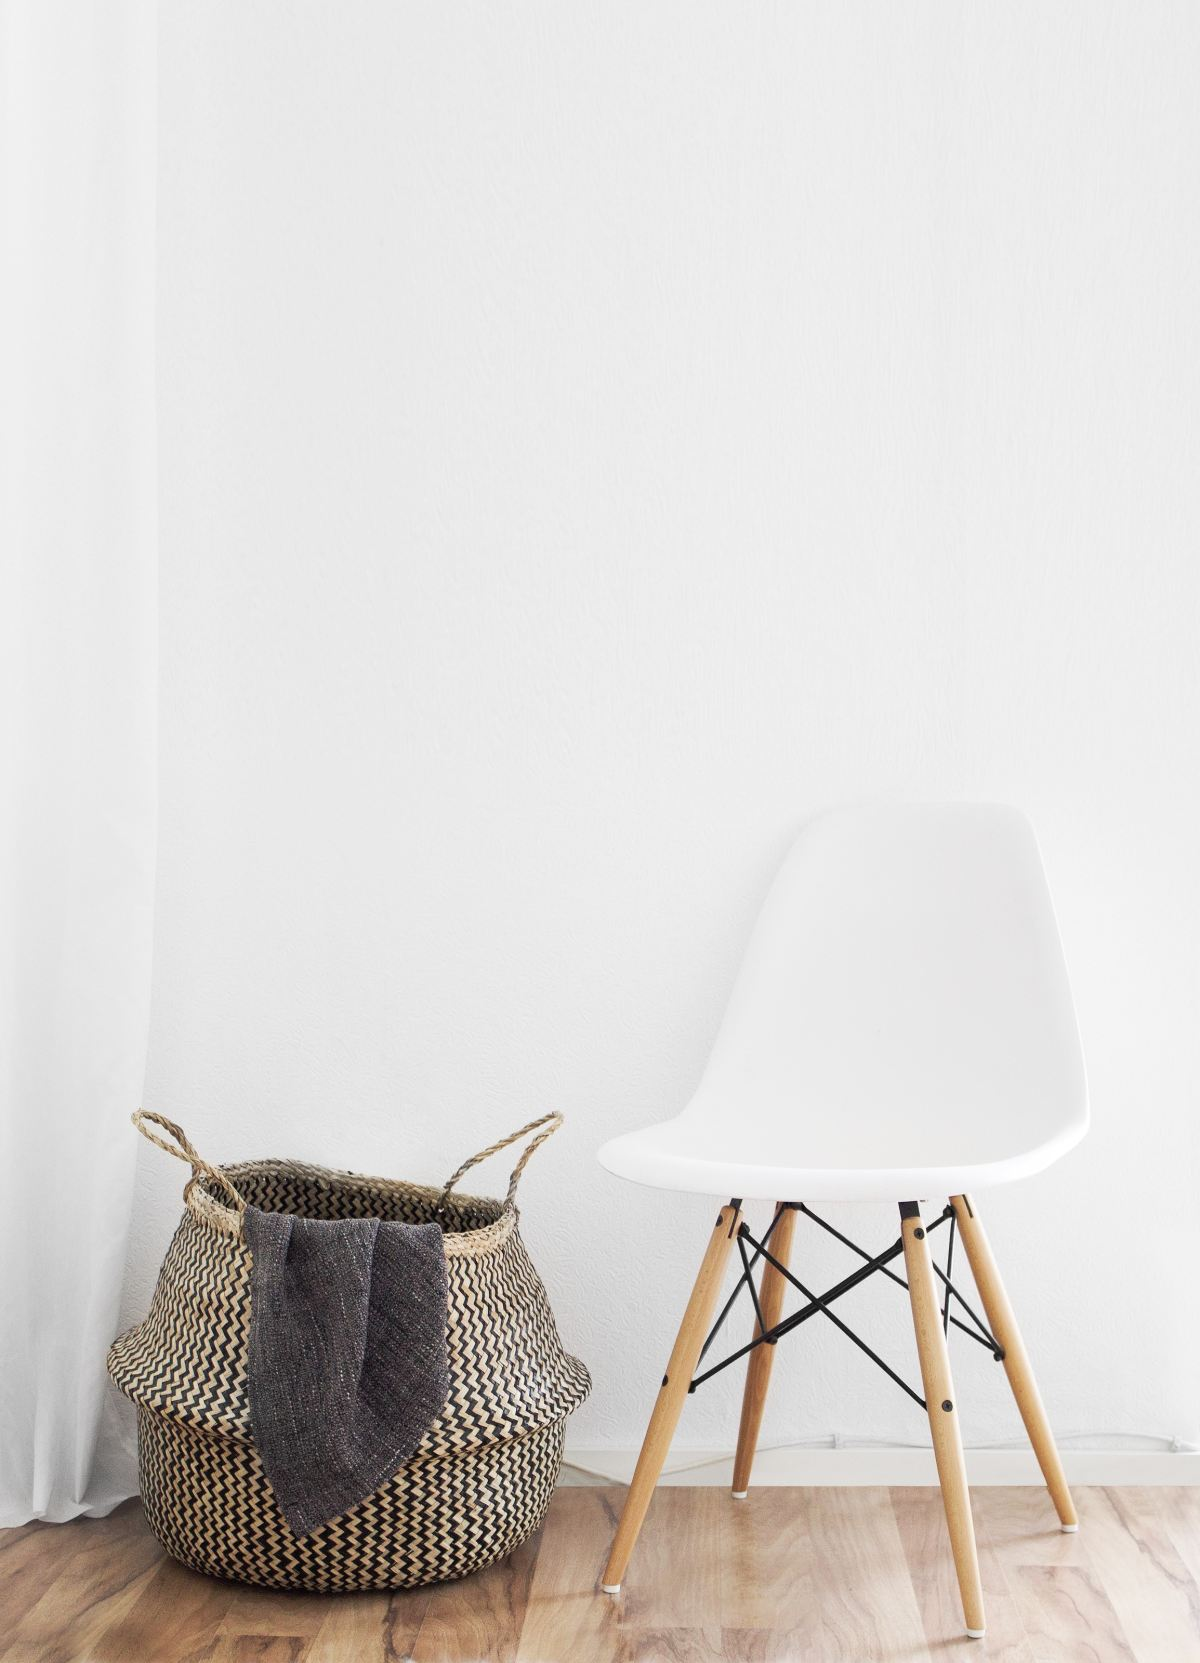 Picture of a white modern chair and basket